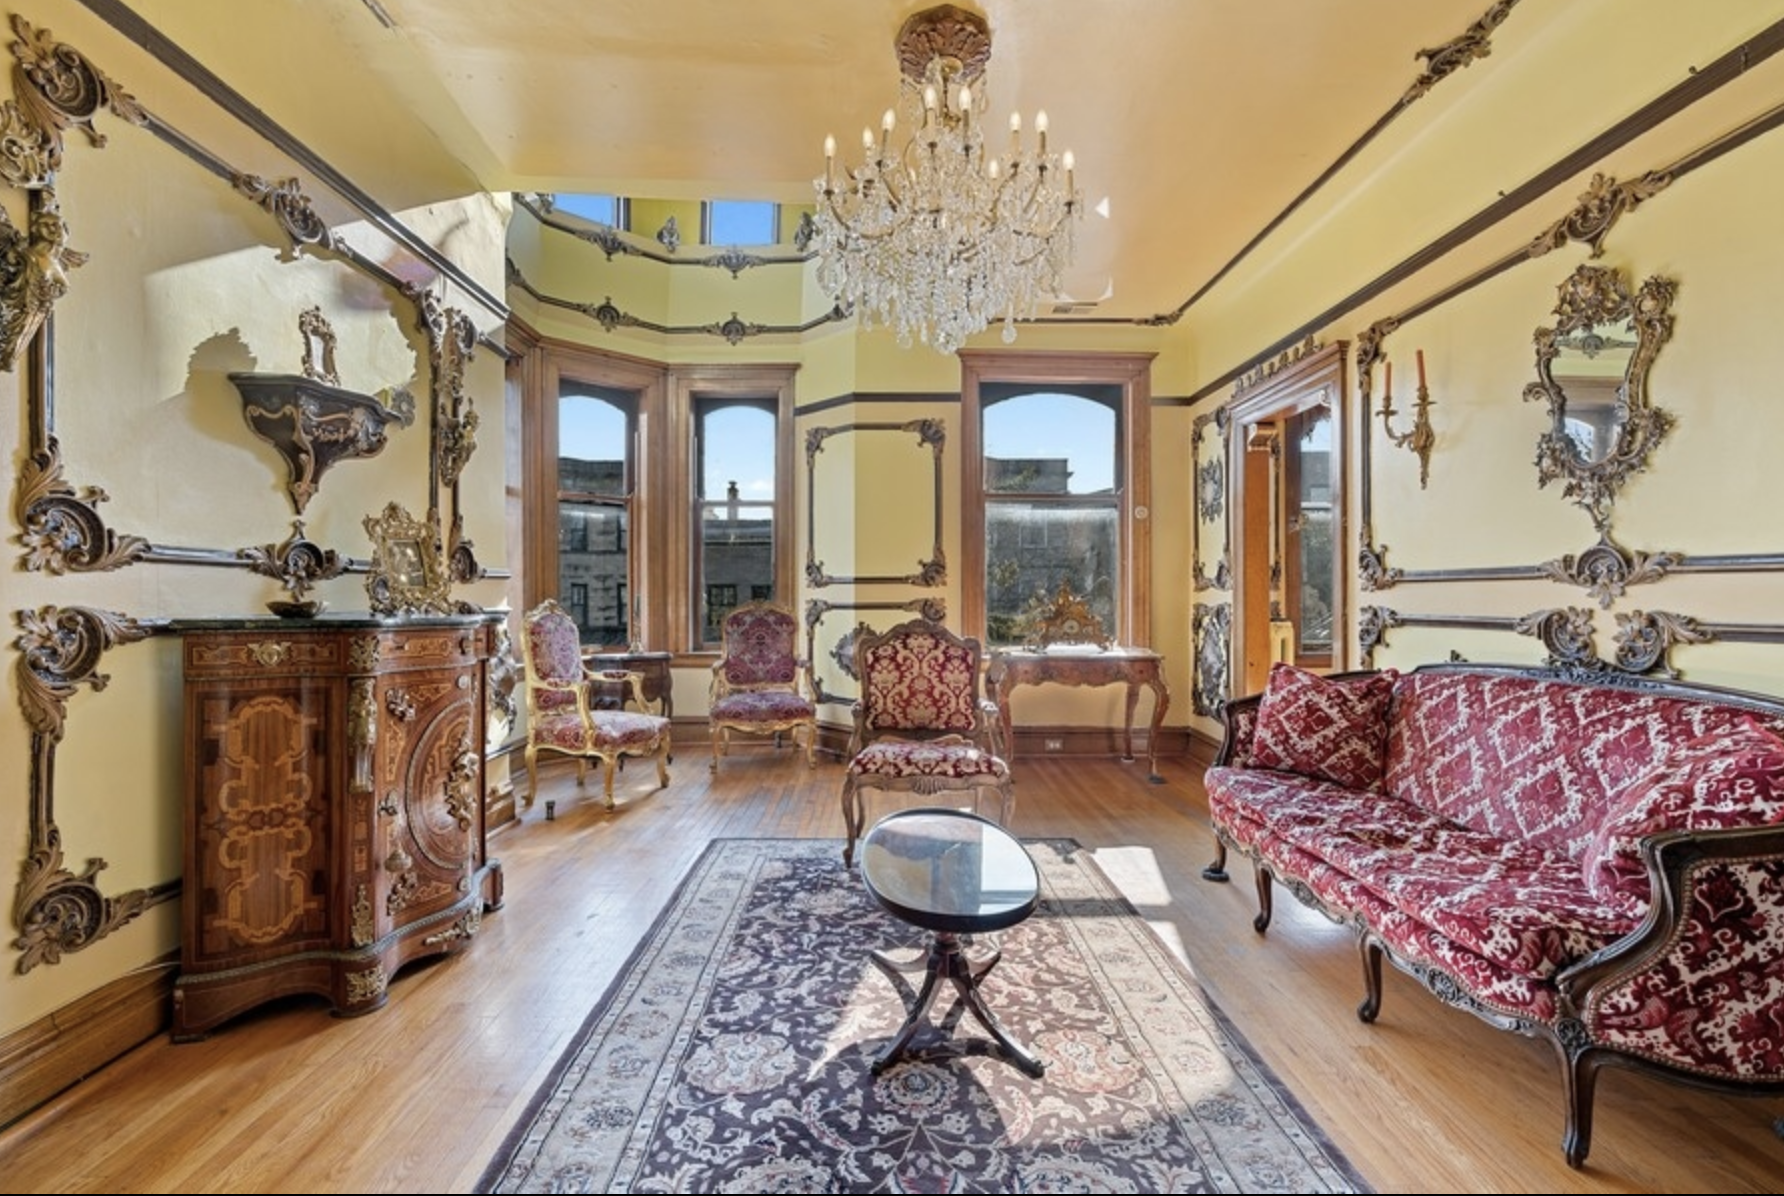 A formal living room with yellow walls, antique rugs, a red Neoclassical sofa, and a double height bay window.